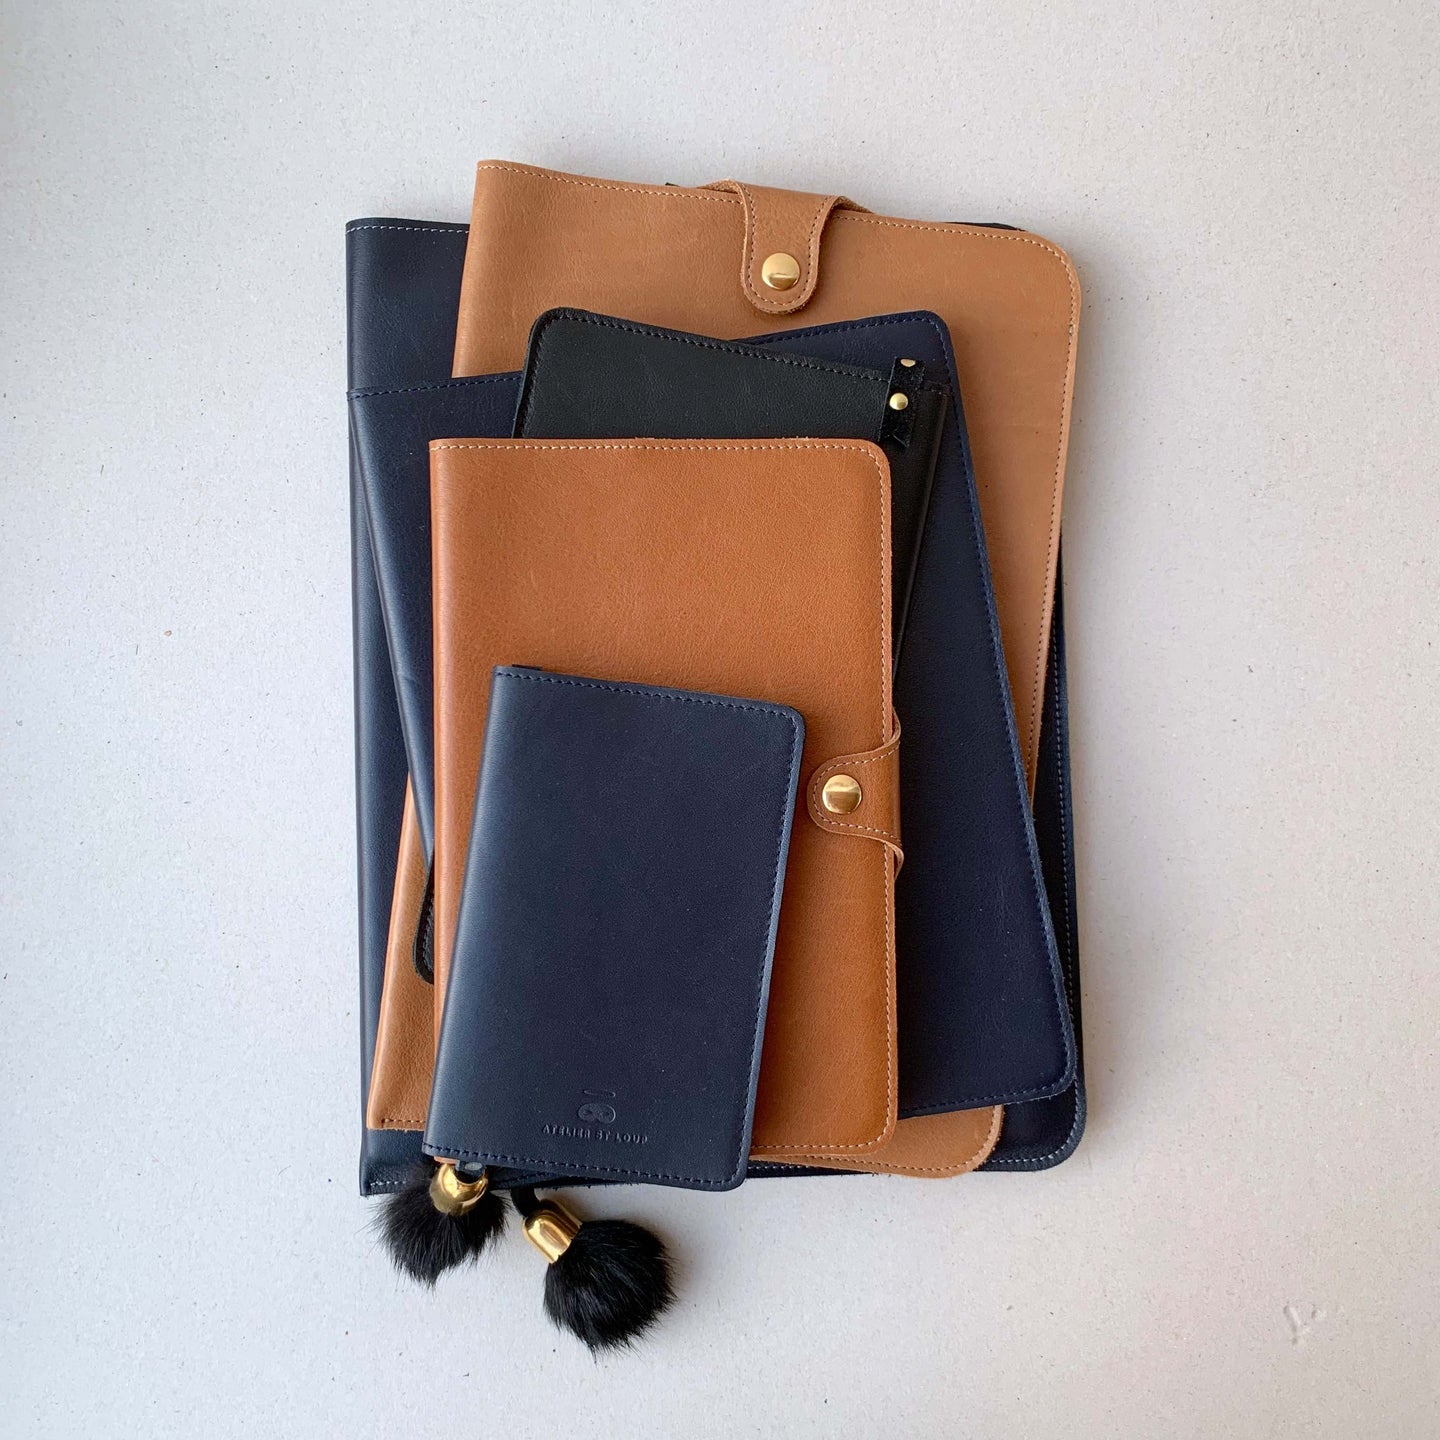 Moleskine & notebook covers for Her